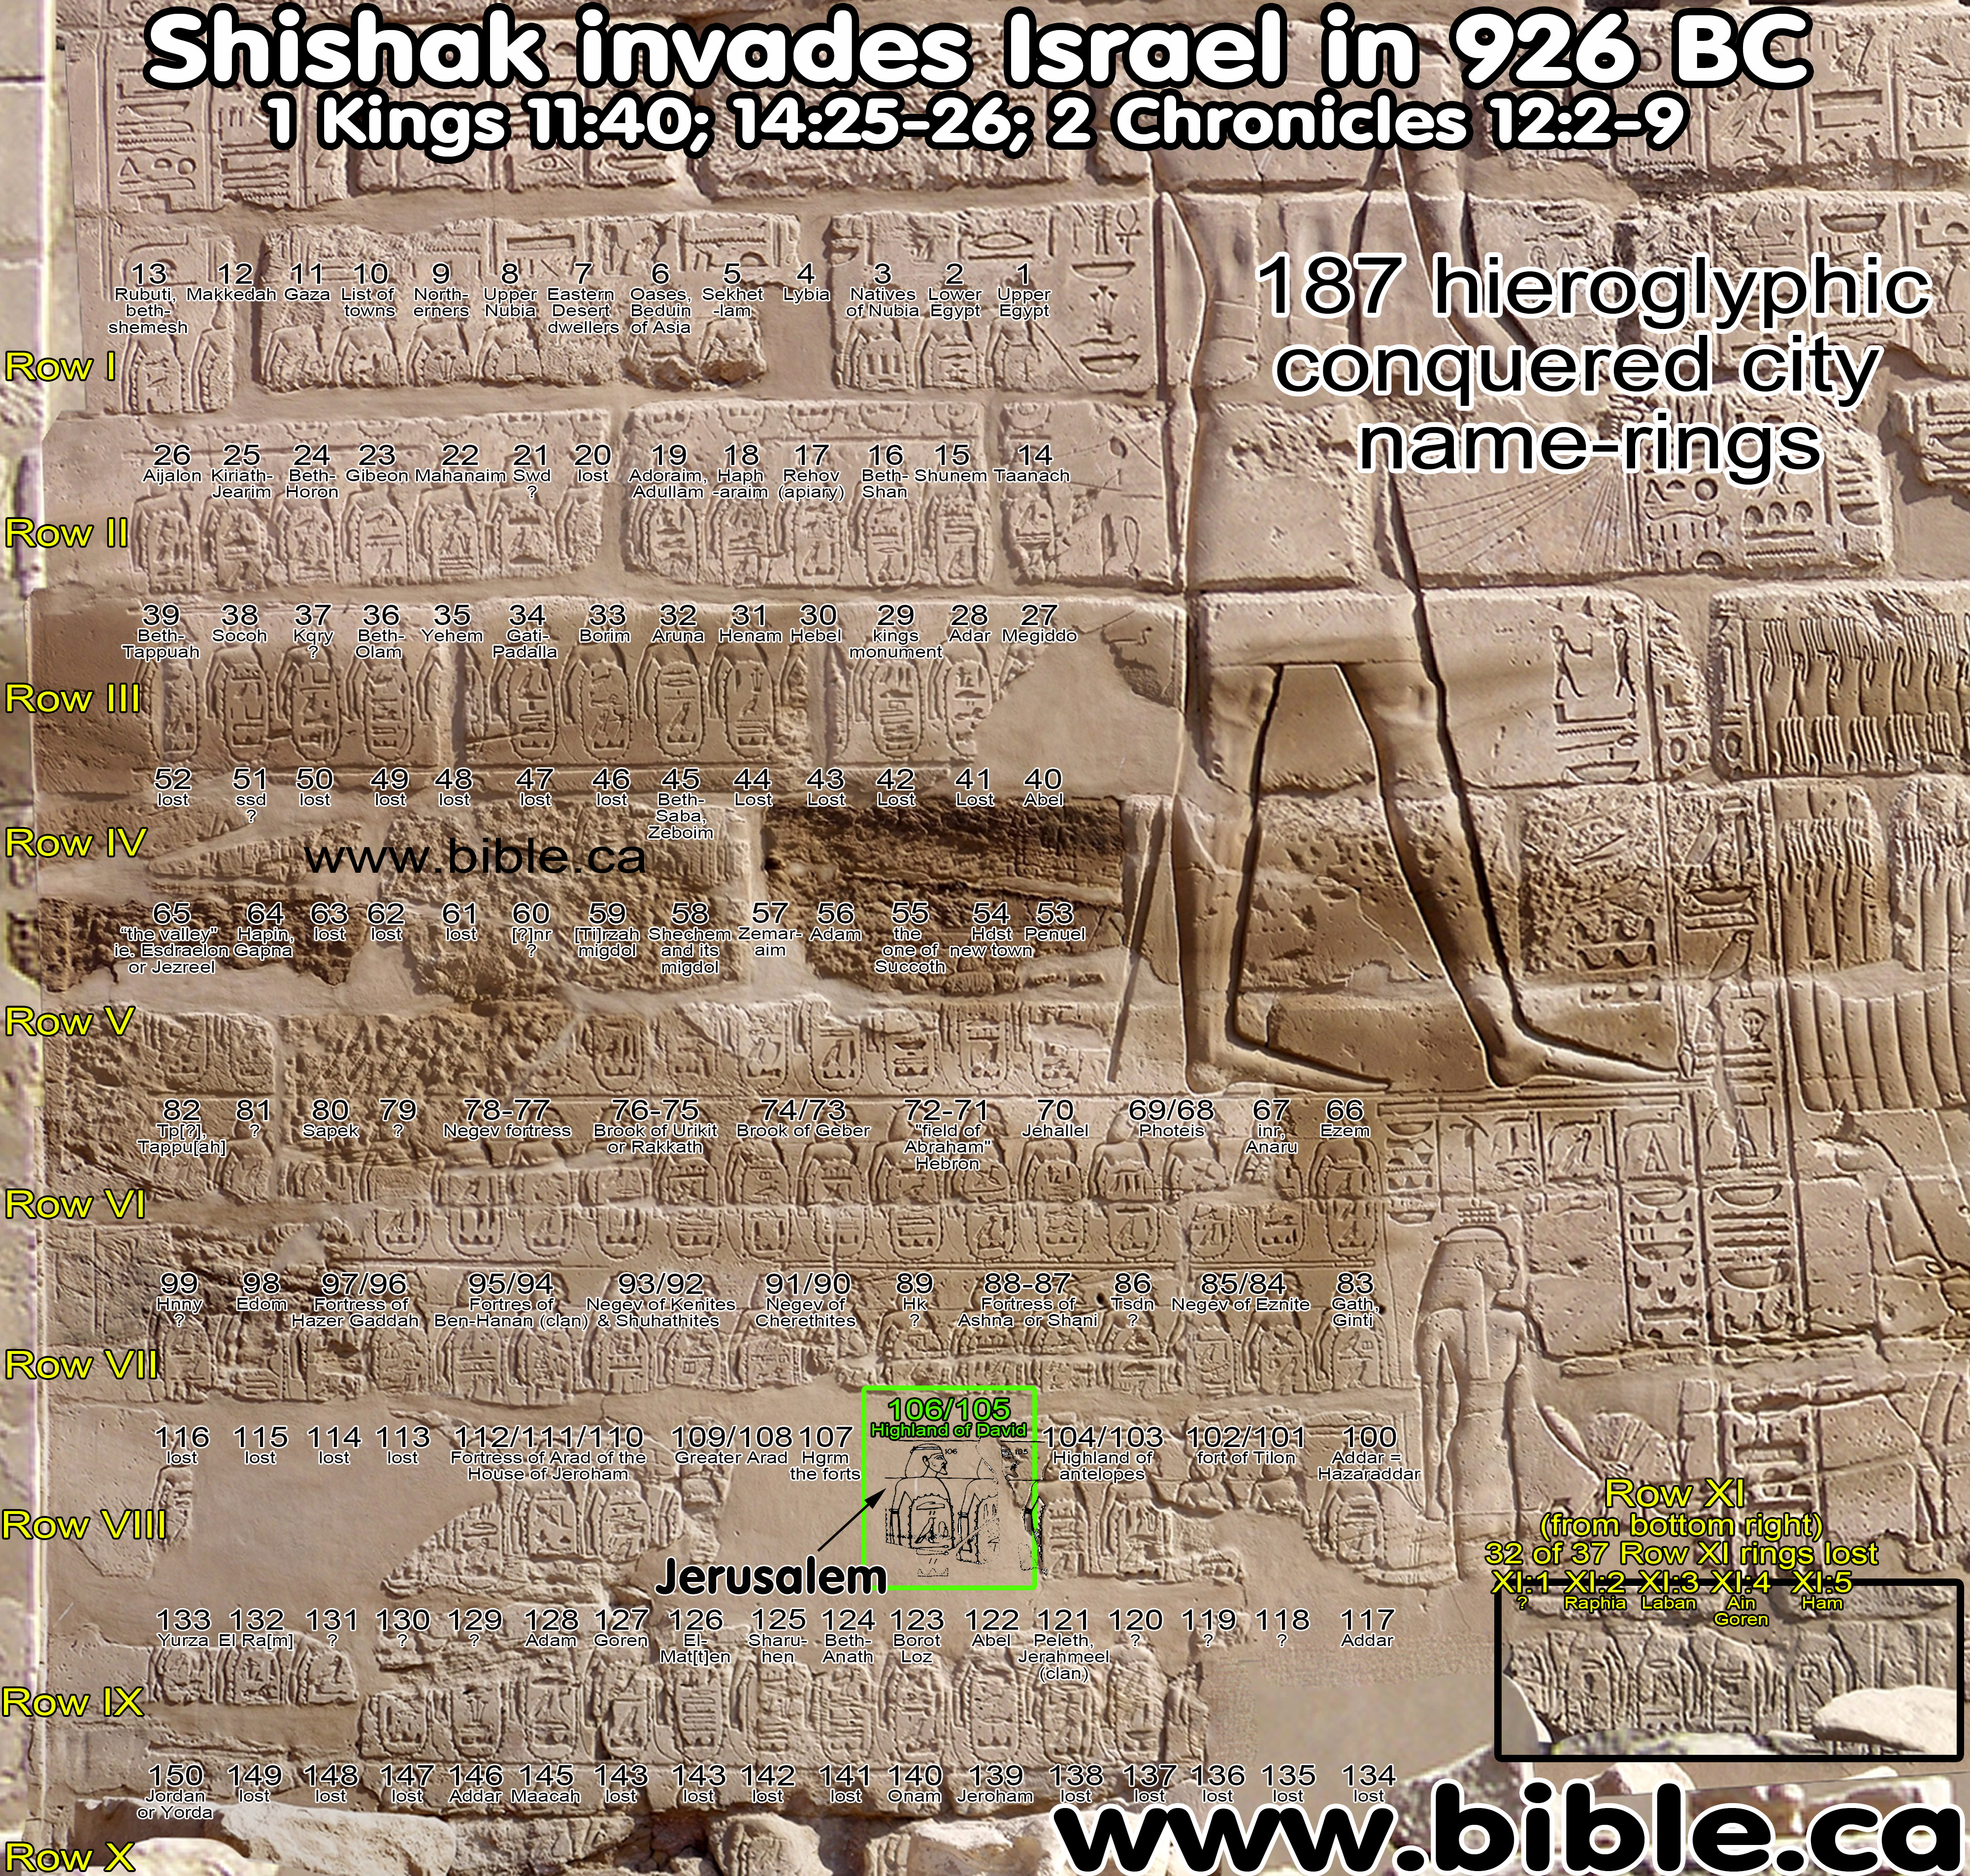 Rehoboam, Shishak I (945-924 BC ) Canaan battle relief topographical on cities of state of palestine, cities of iraq, cities of gog and magog, cities of jericho, cities of egypt, cities of edom, cities of texas, cities of jerusalem, cities of moab, cities of shinar, cities of hittites, cities of philistia, cities of chaldea, cities of philistines, cities of cyprus, cities of babylon, cities of syria, cities of lebanon, cities of judea, cities of new hampshire,